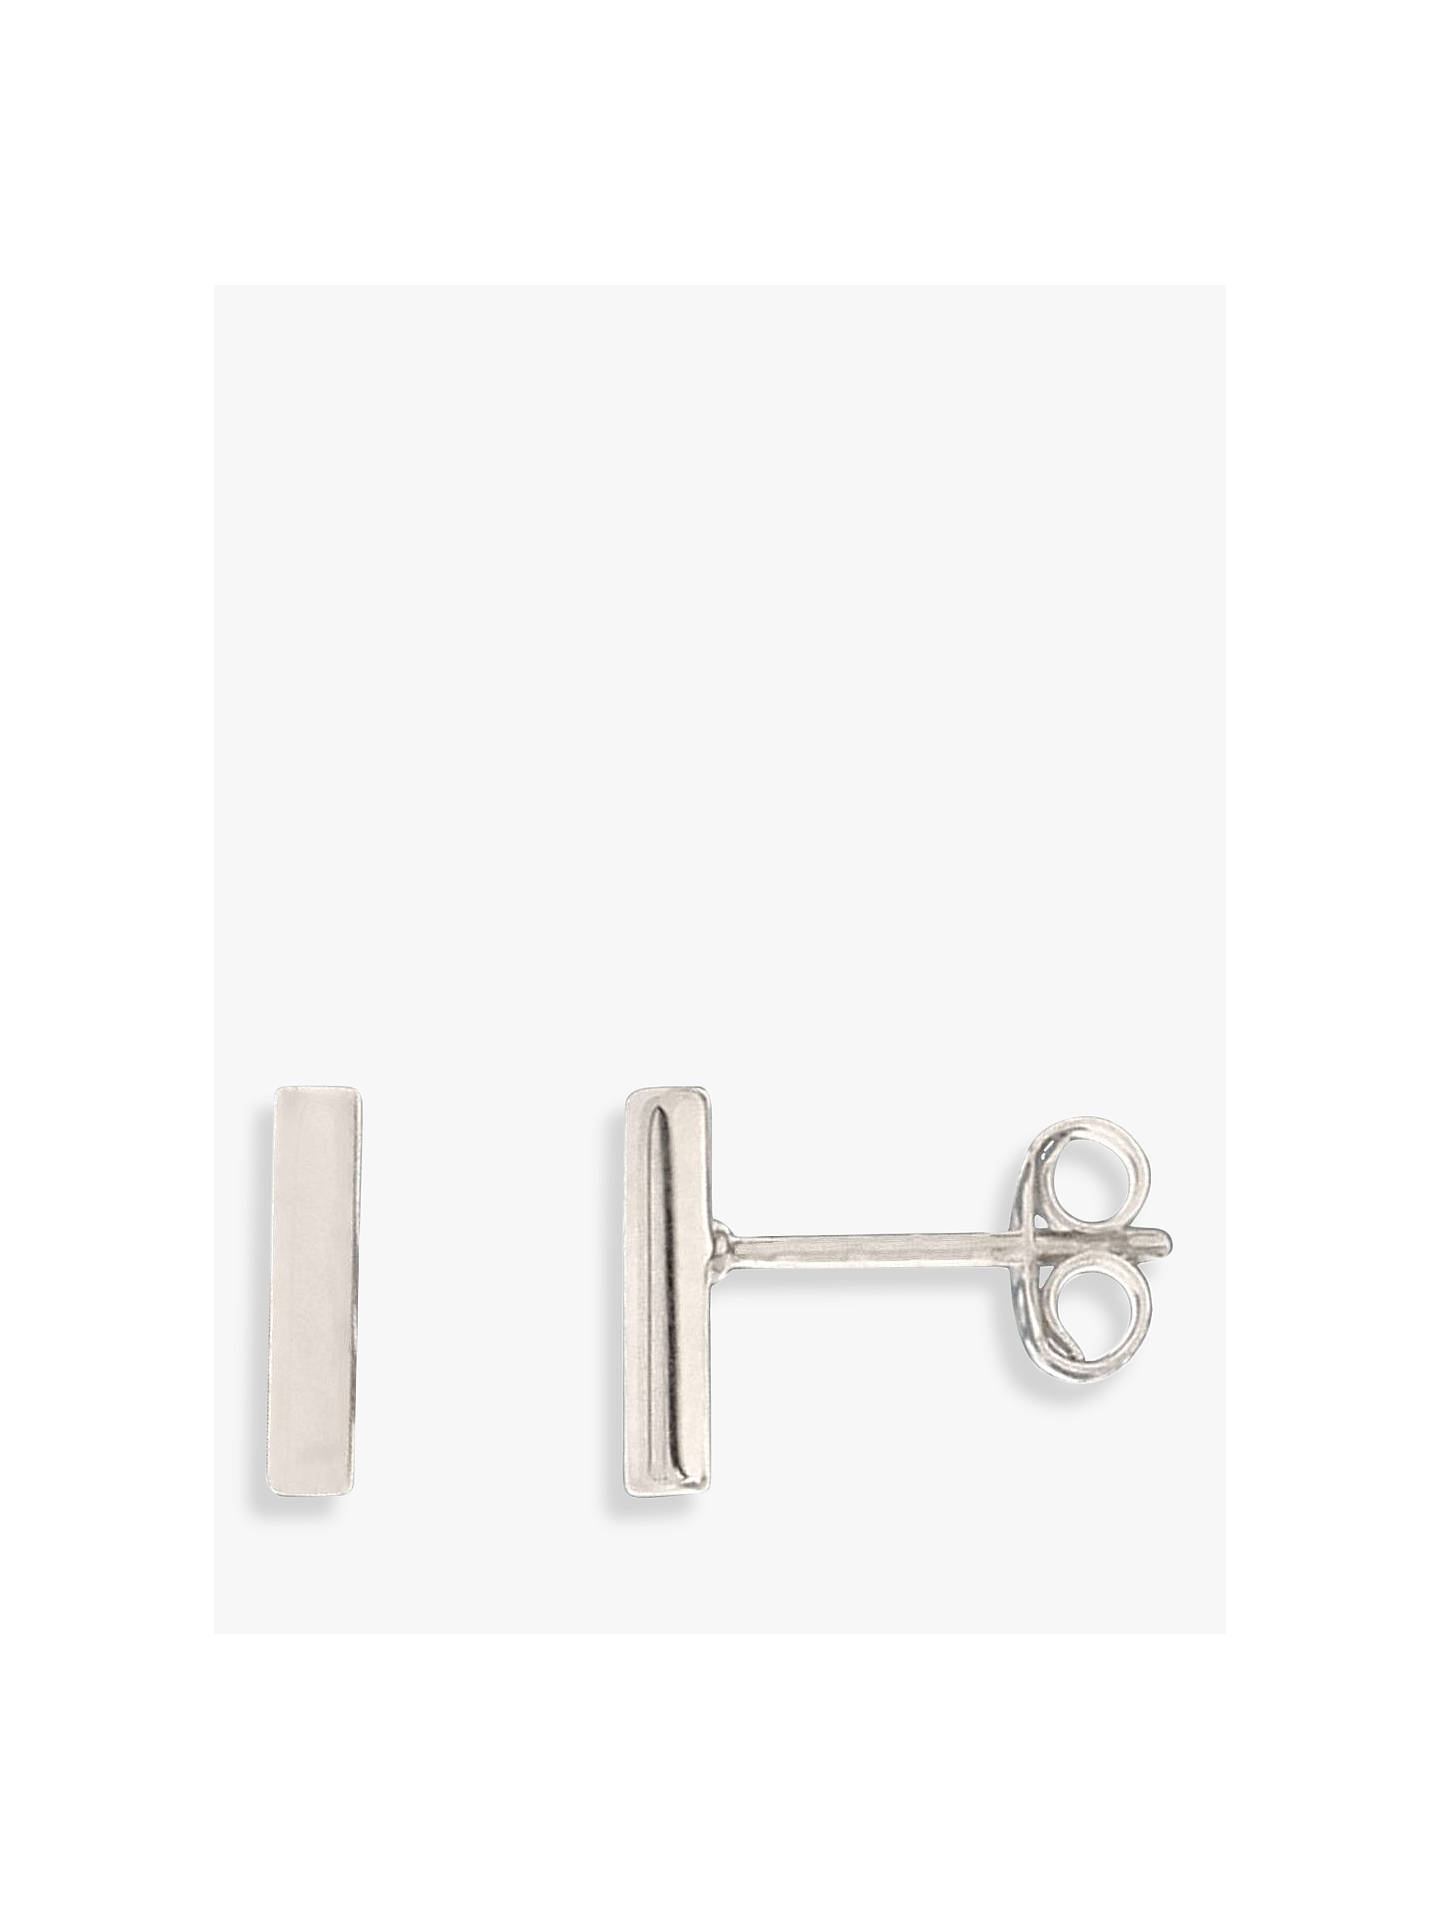 Nina B Slim Bar Stud Earrings, Silver by Nina B